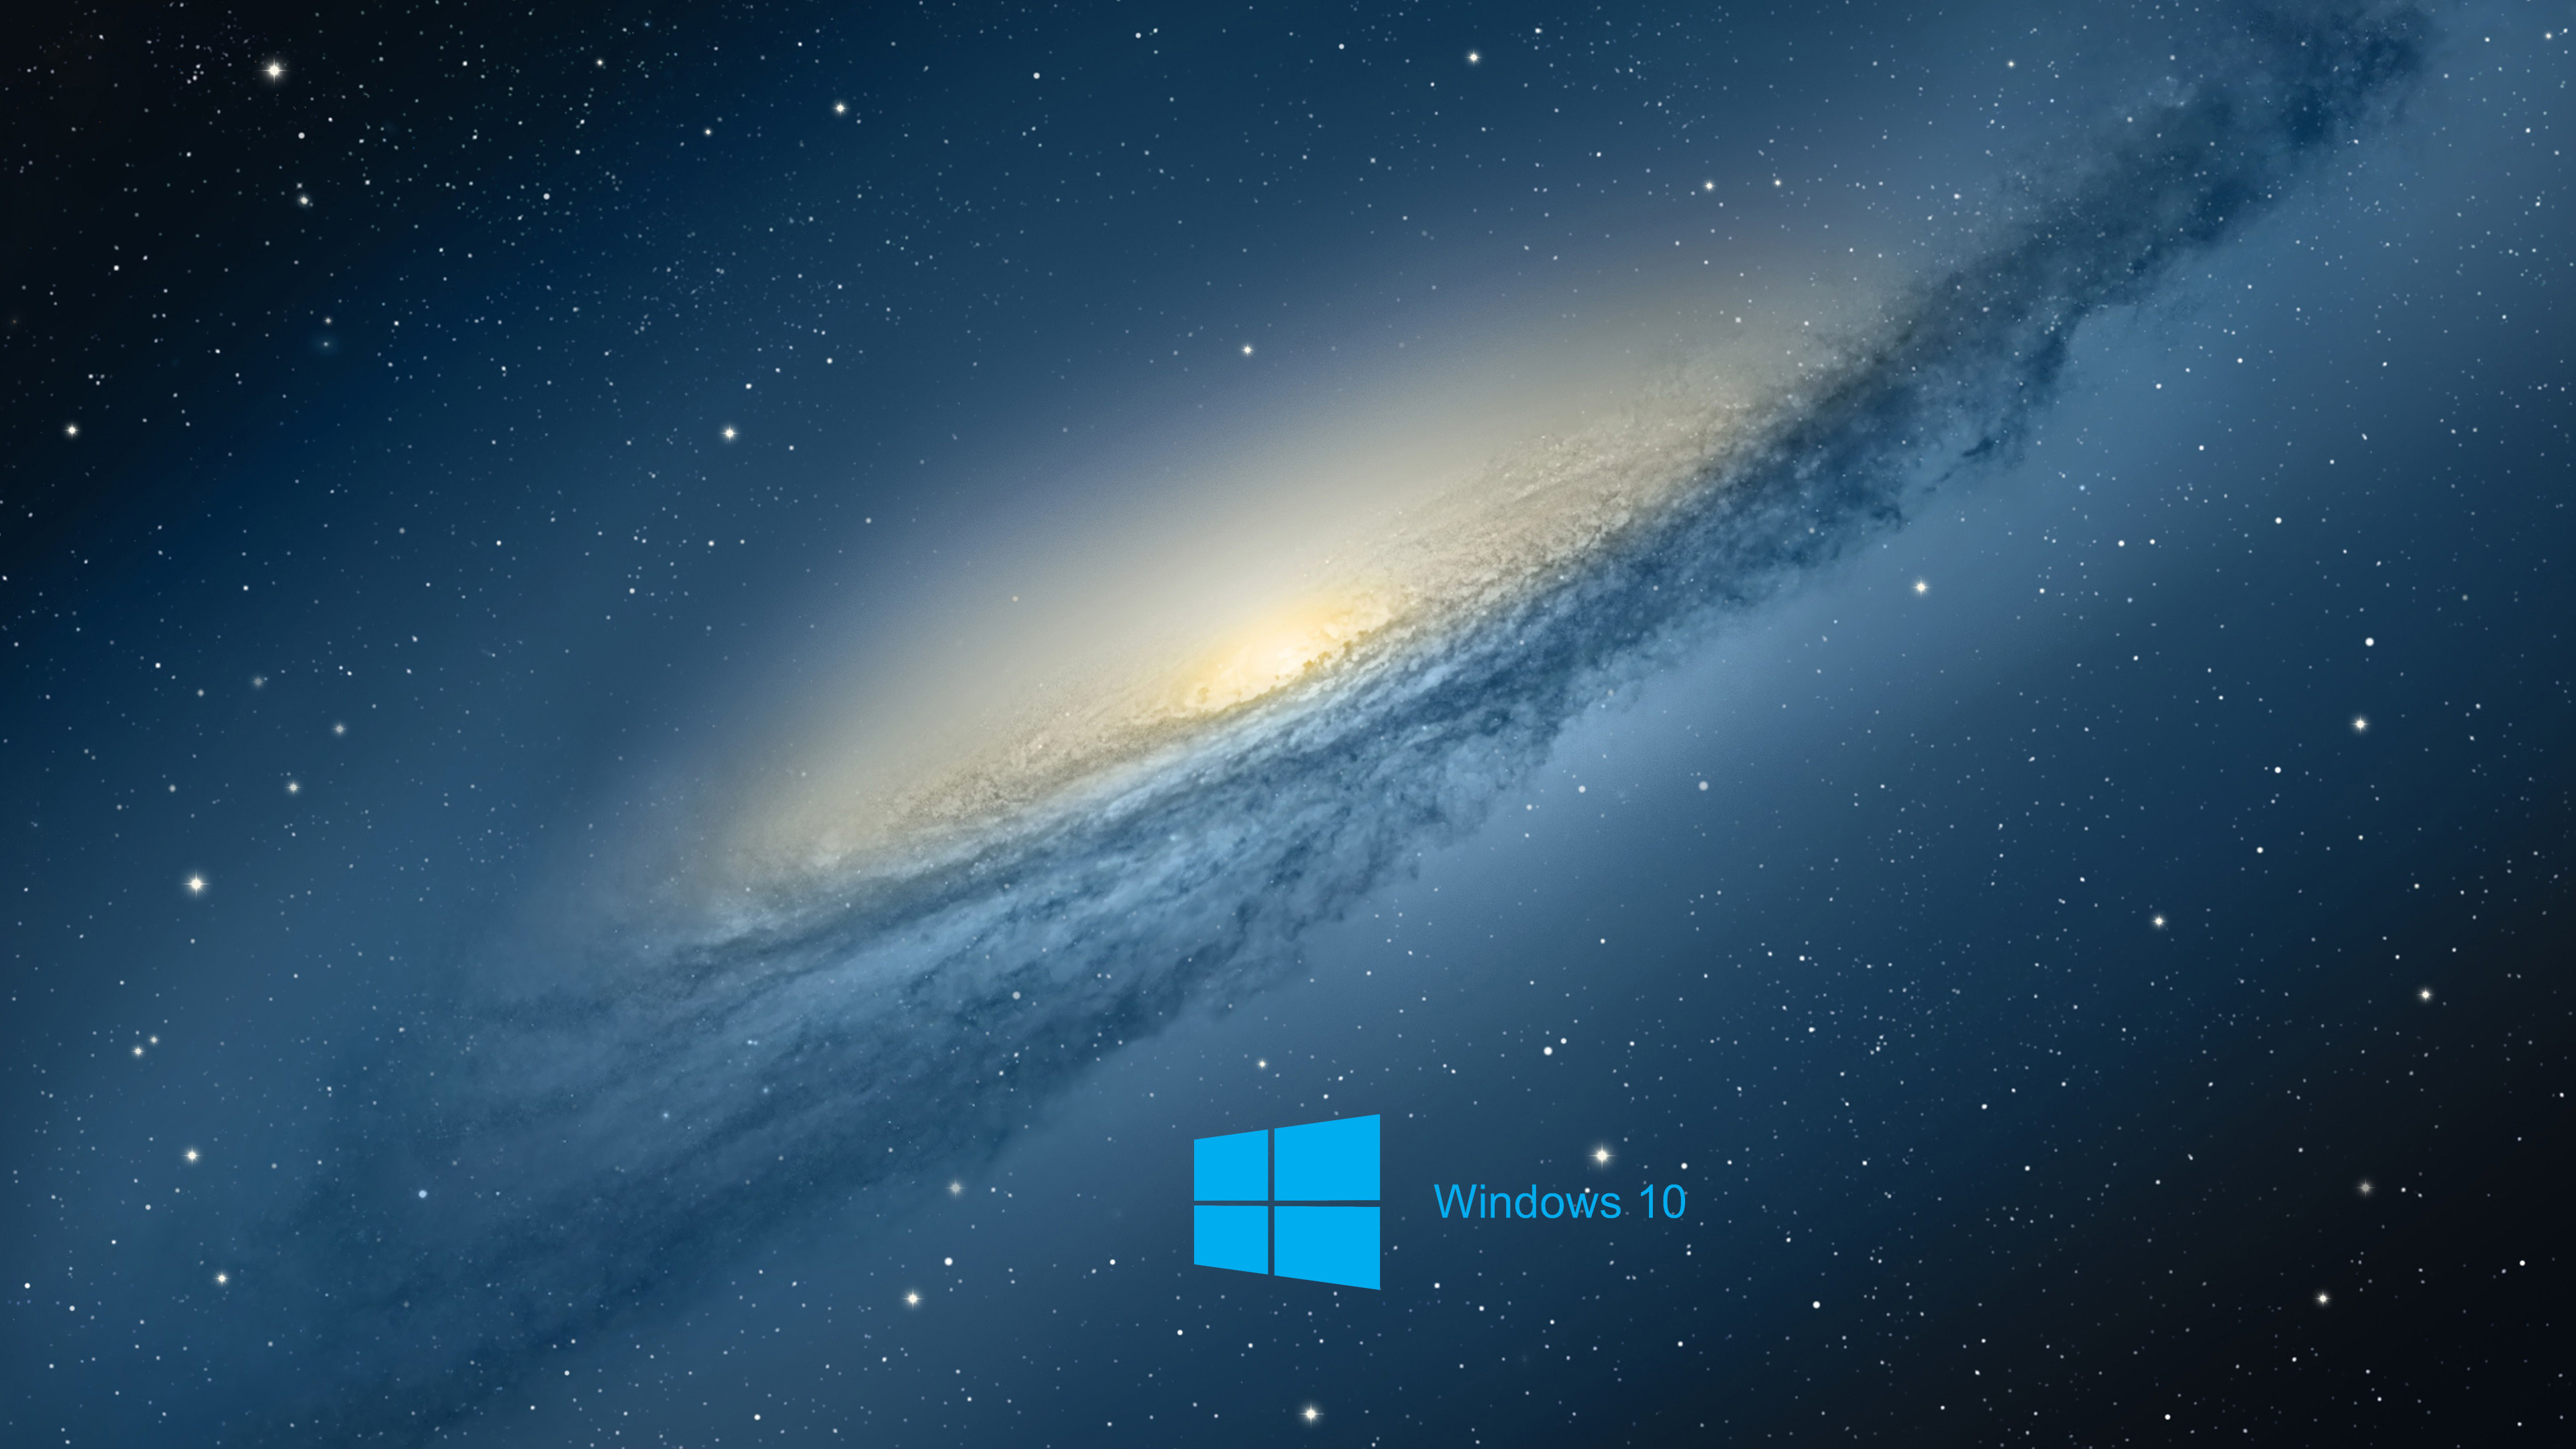 3840x2160 Windows 10 Desktop Background with scientific space planet galaxy .